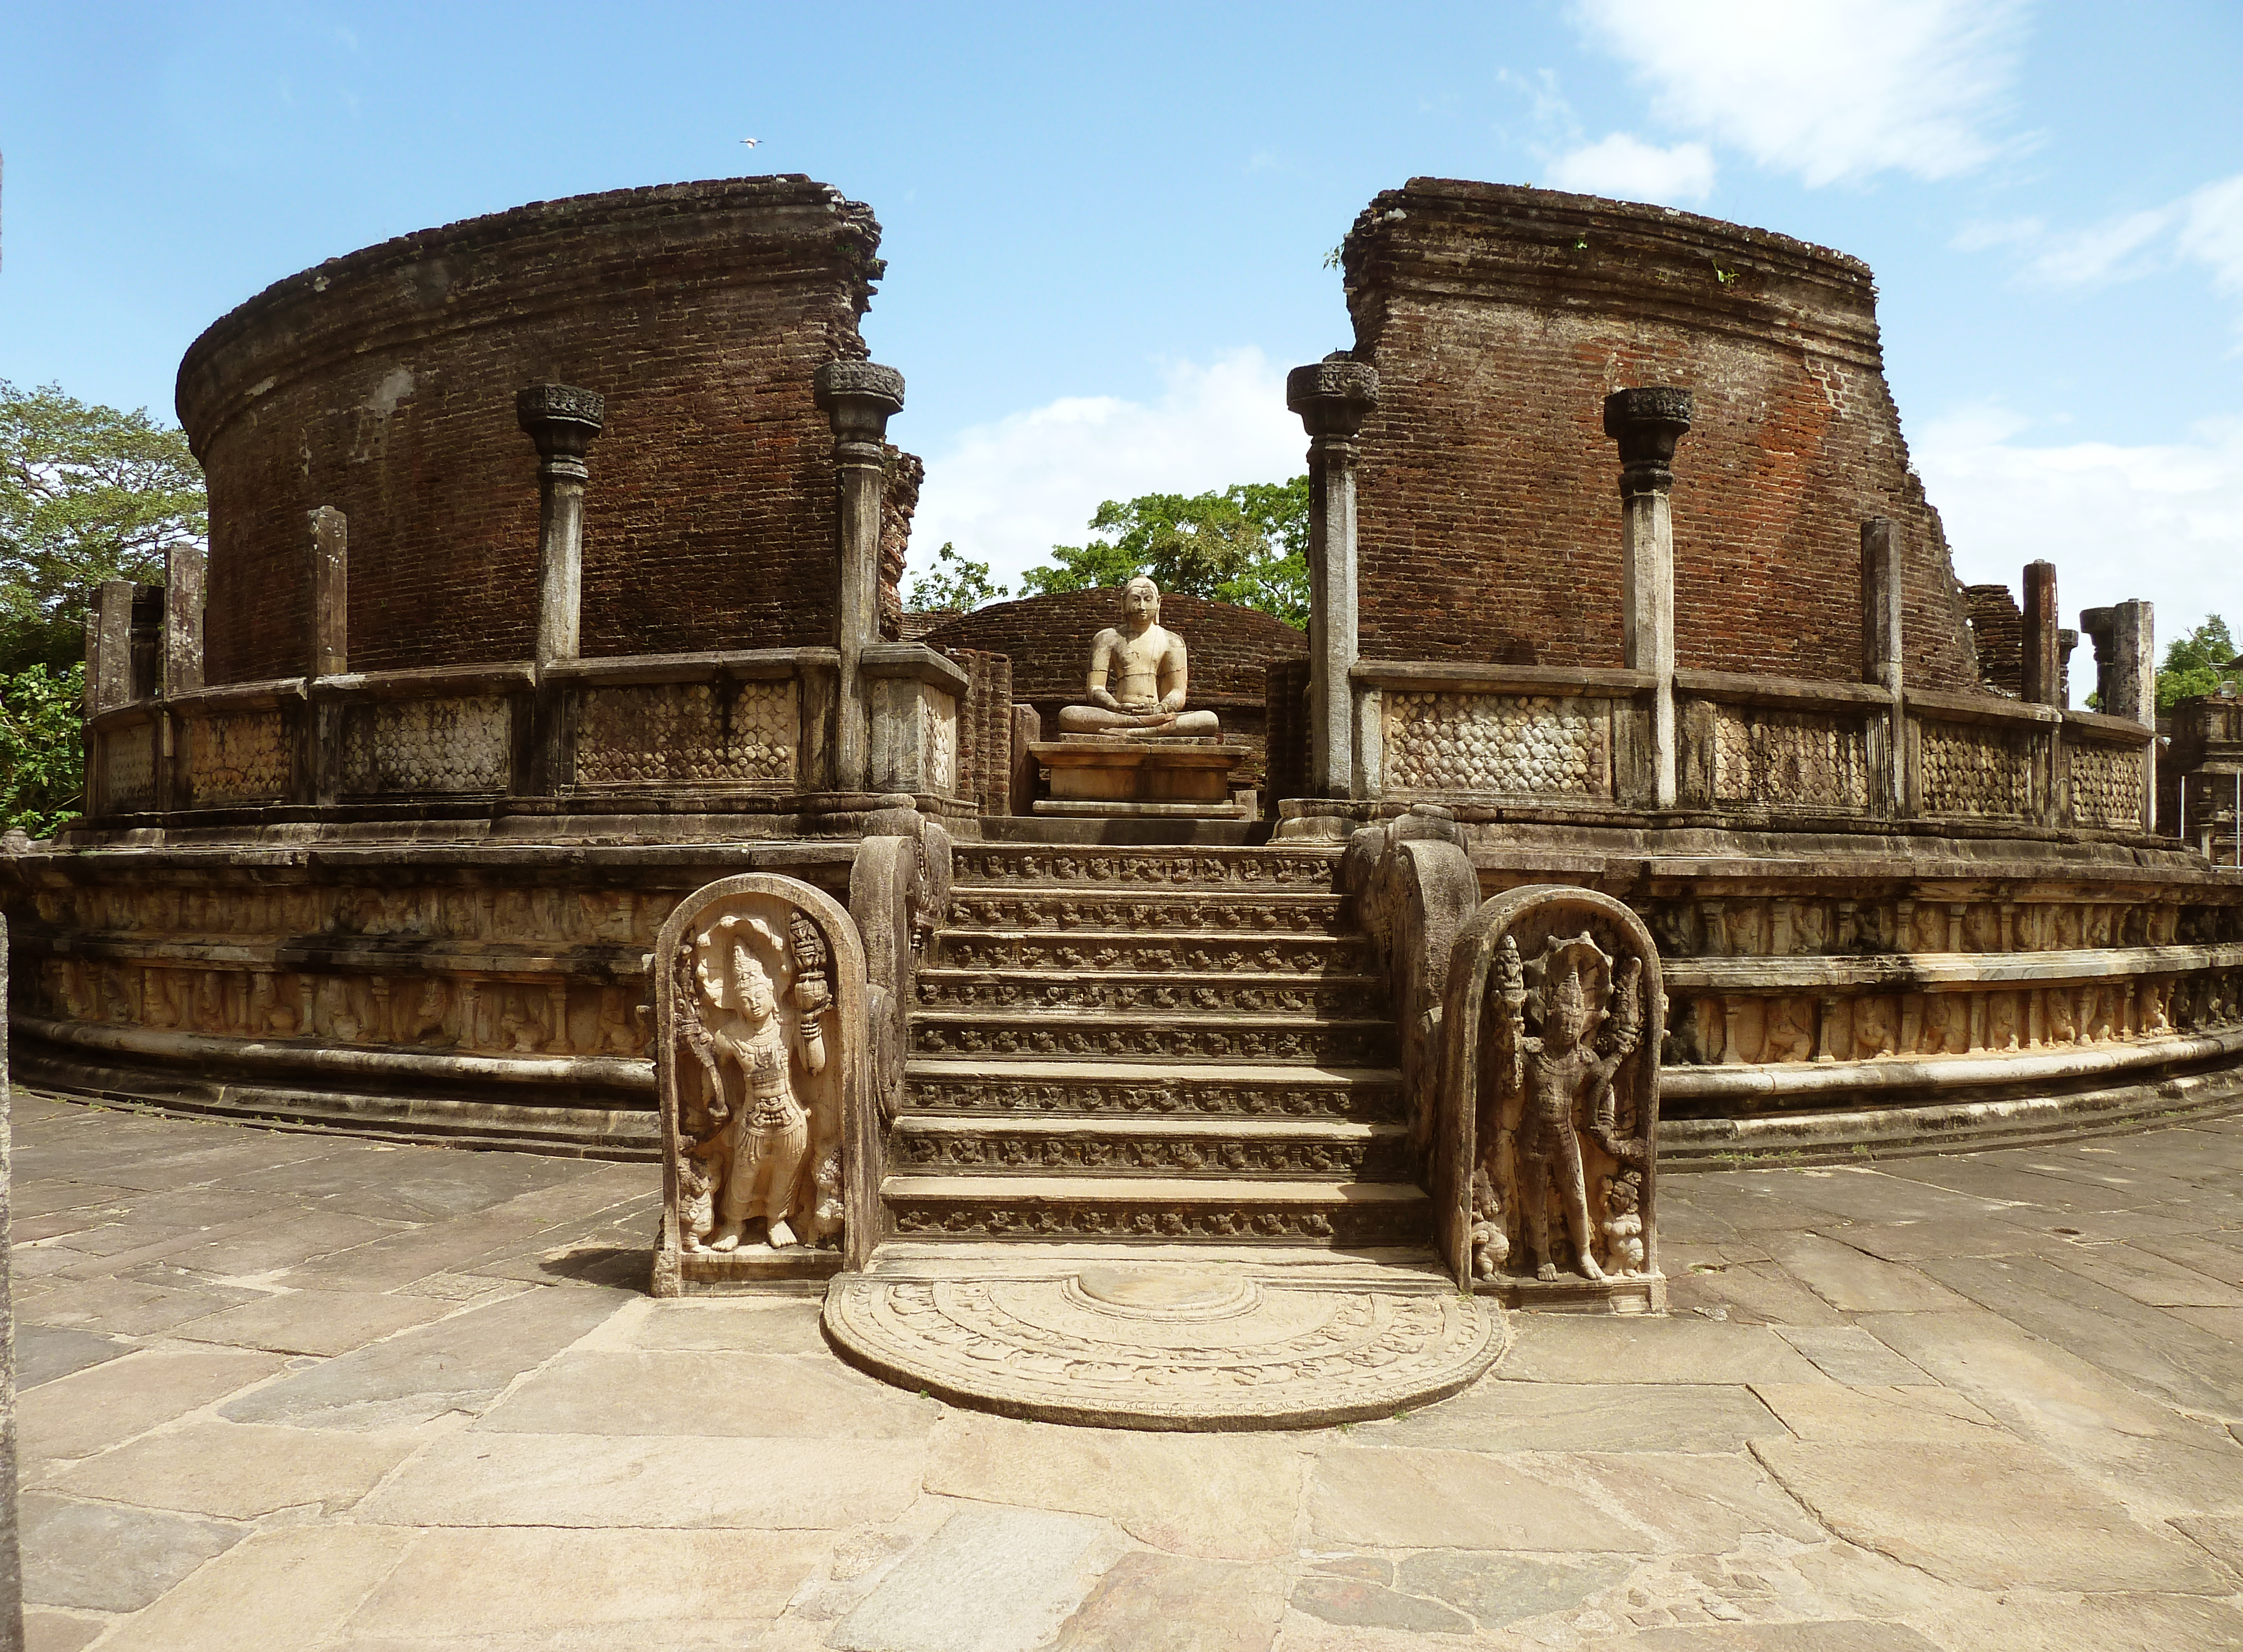 Polonnaruwa Sri Lanka  City pictures : Hatadage Monument, Quadrangle, Polonnaruwa, Sri Lanka